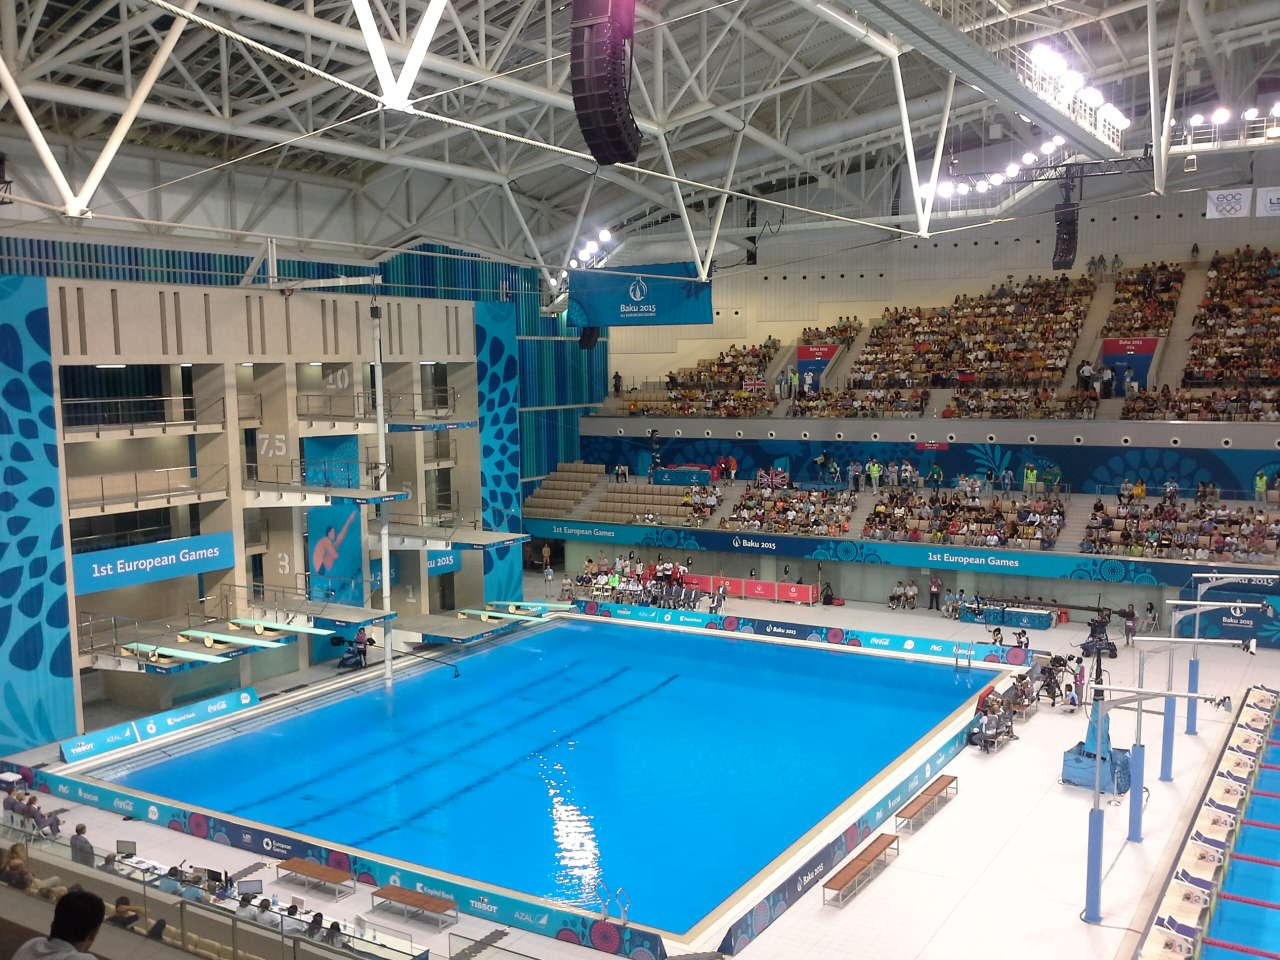 Azerbaijani female athlete reached diving competition final as part of first European Games in Baku (PHOTO) - Gallery Image